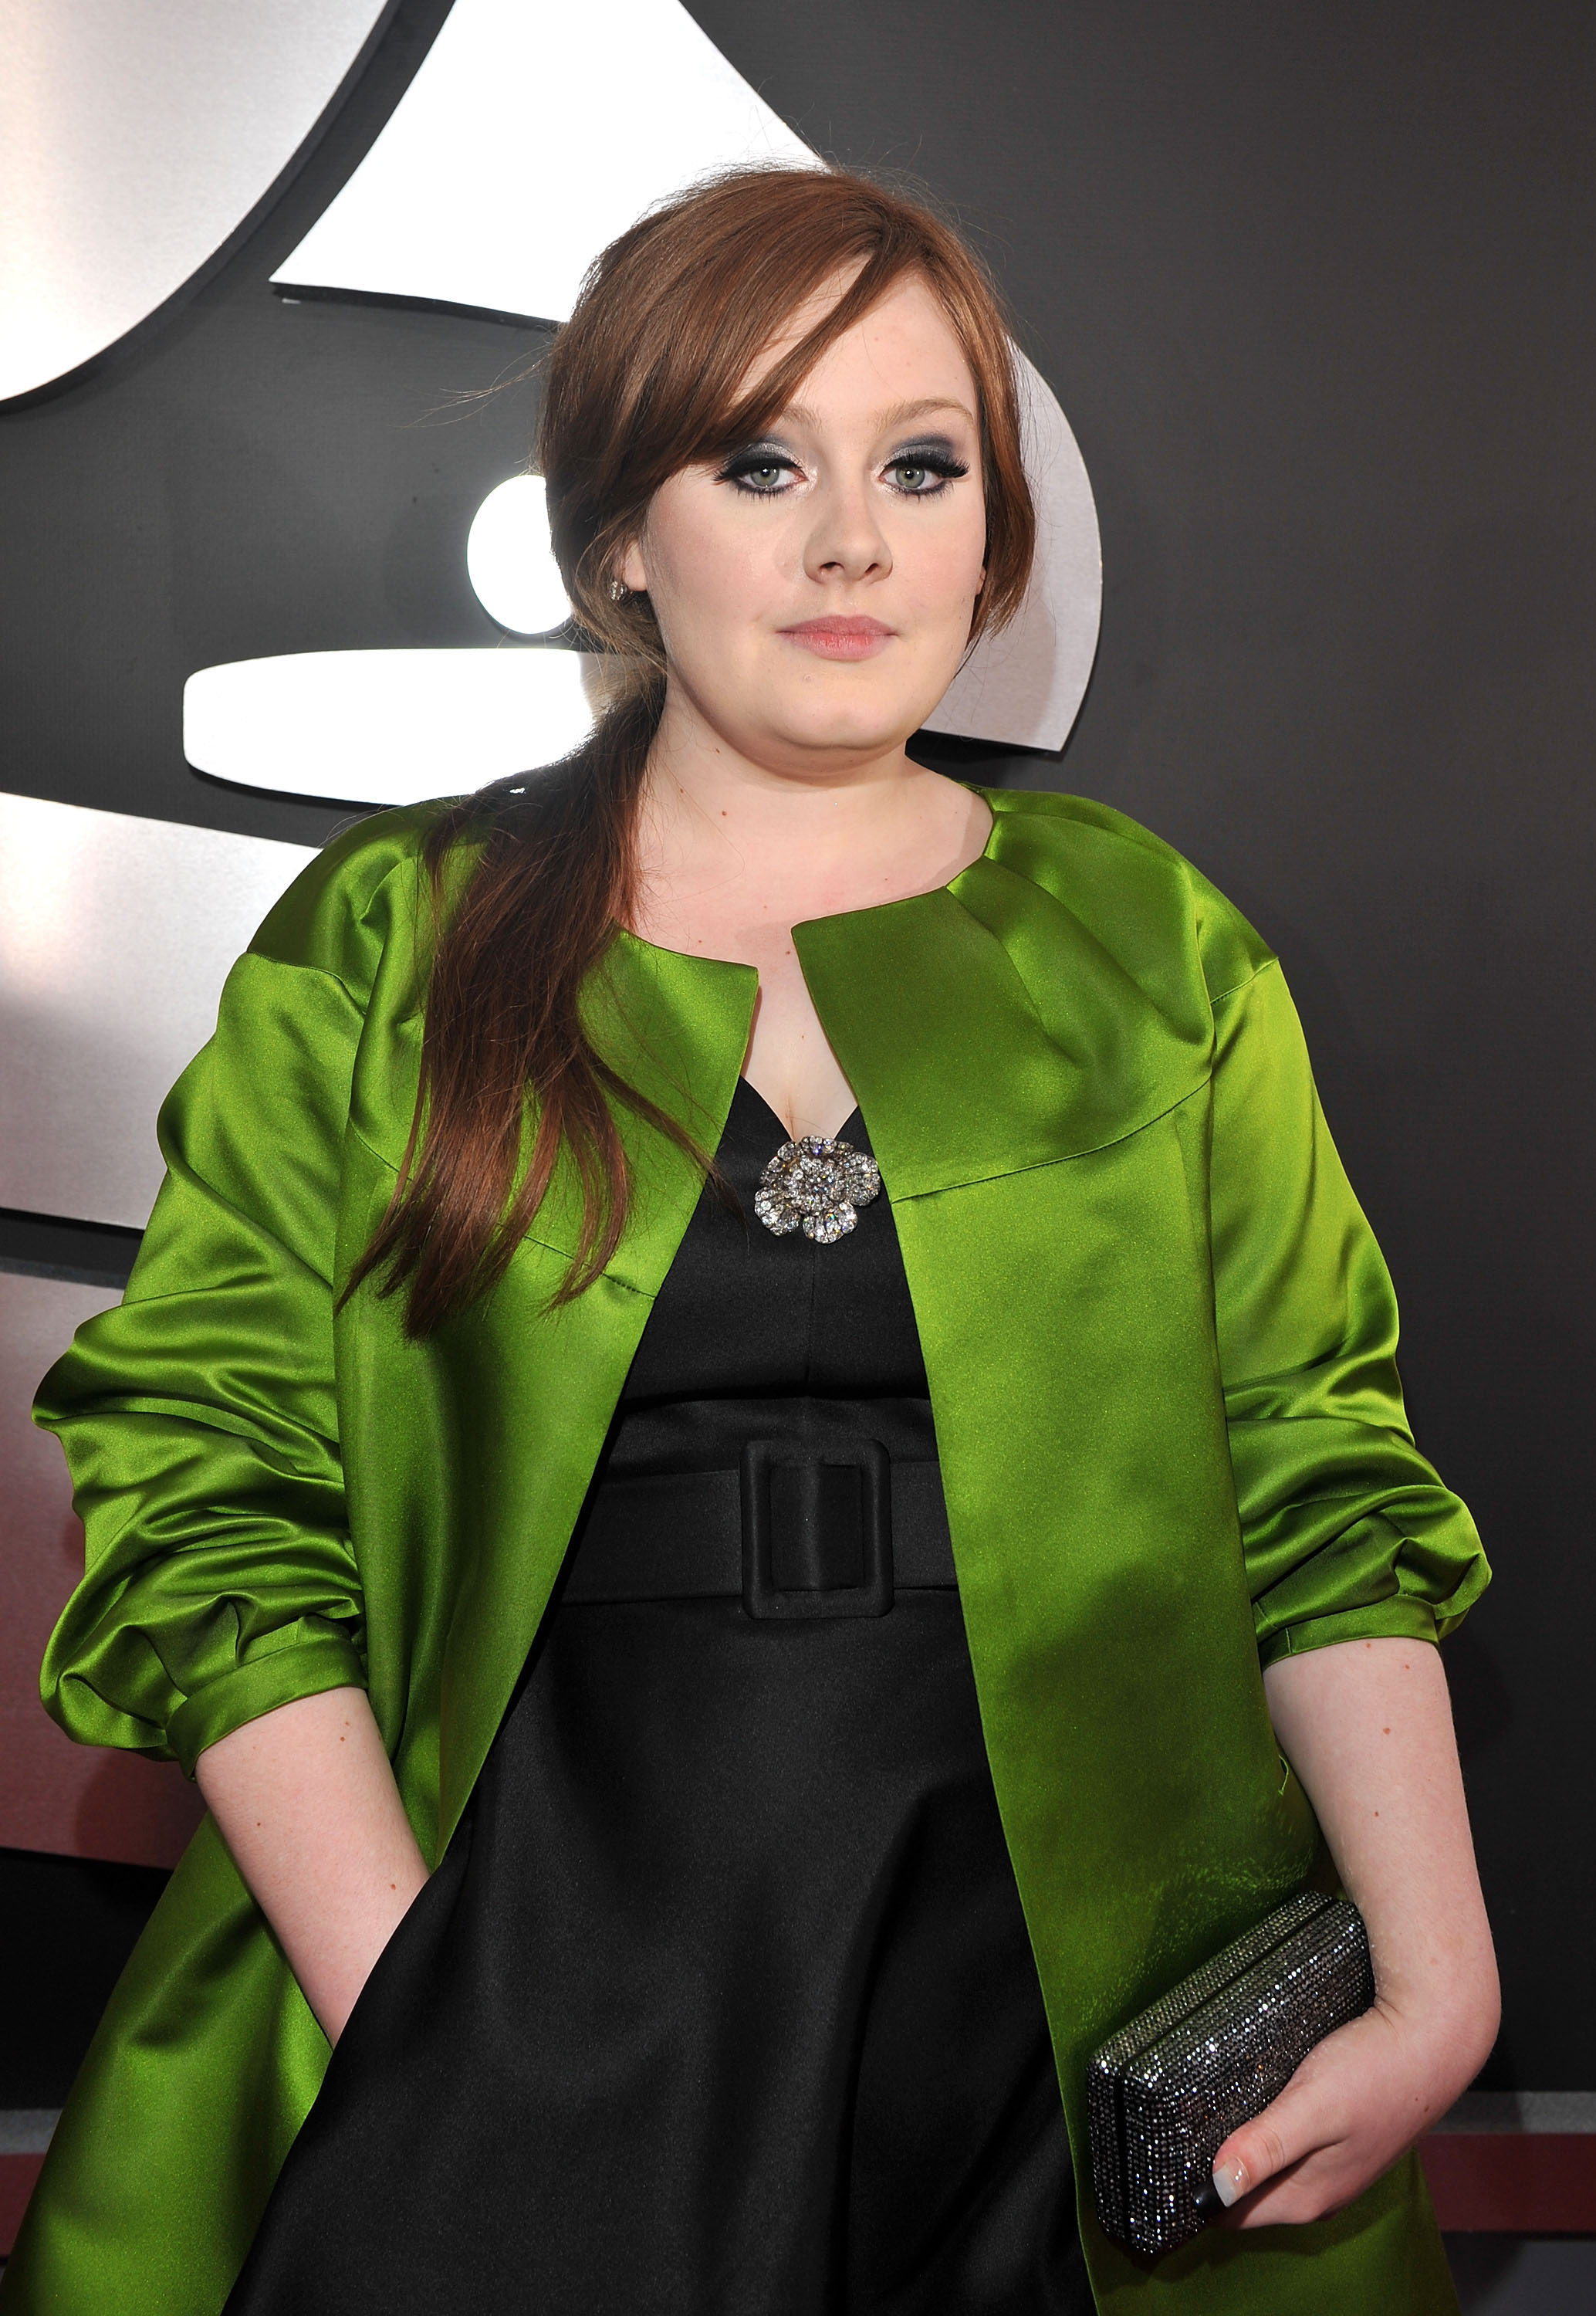 Adele arrives to the 51st Annual GRAMMY Awards held at the Staples Center in Los Angeles on Feb. 8, 2009.